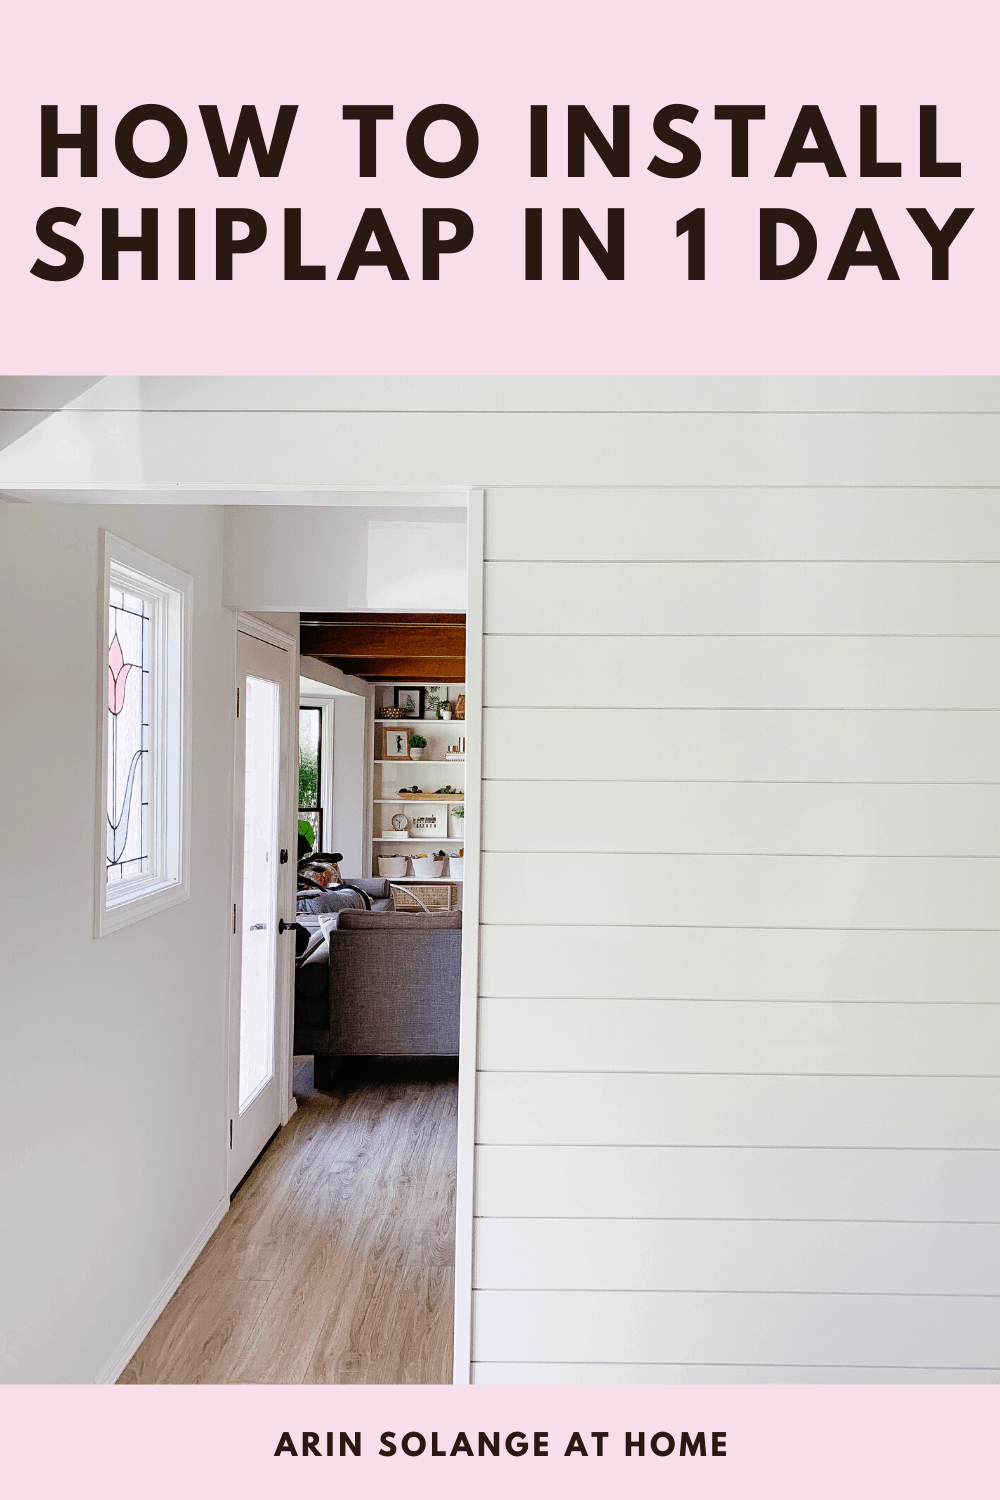 How to install shiplap in 1 day